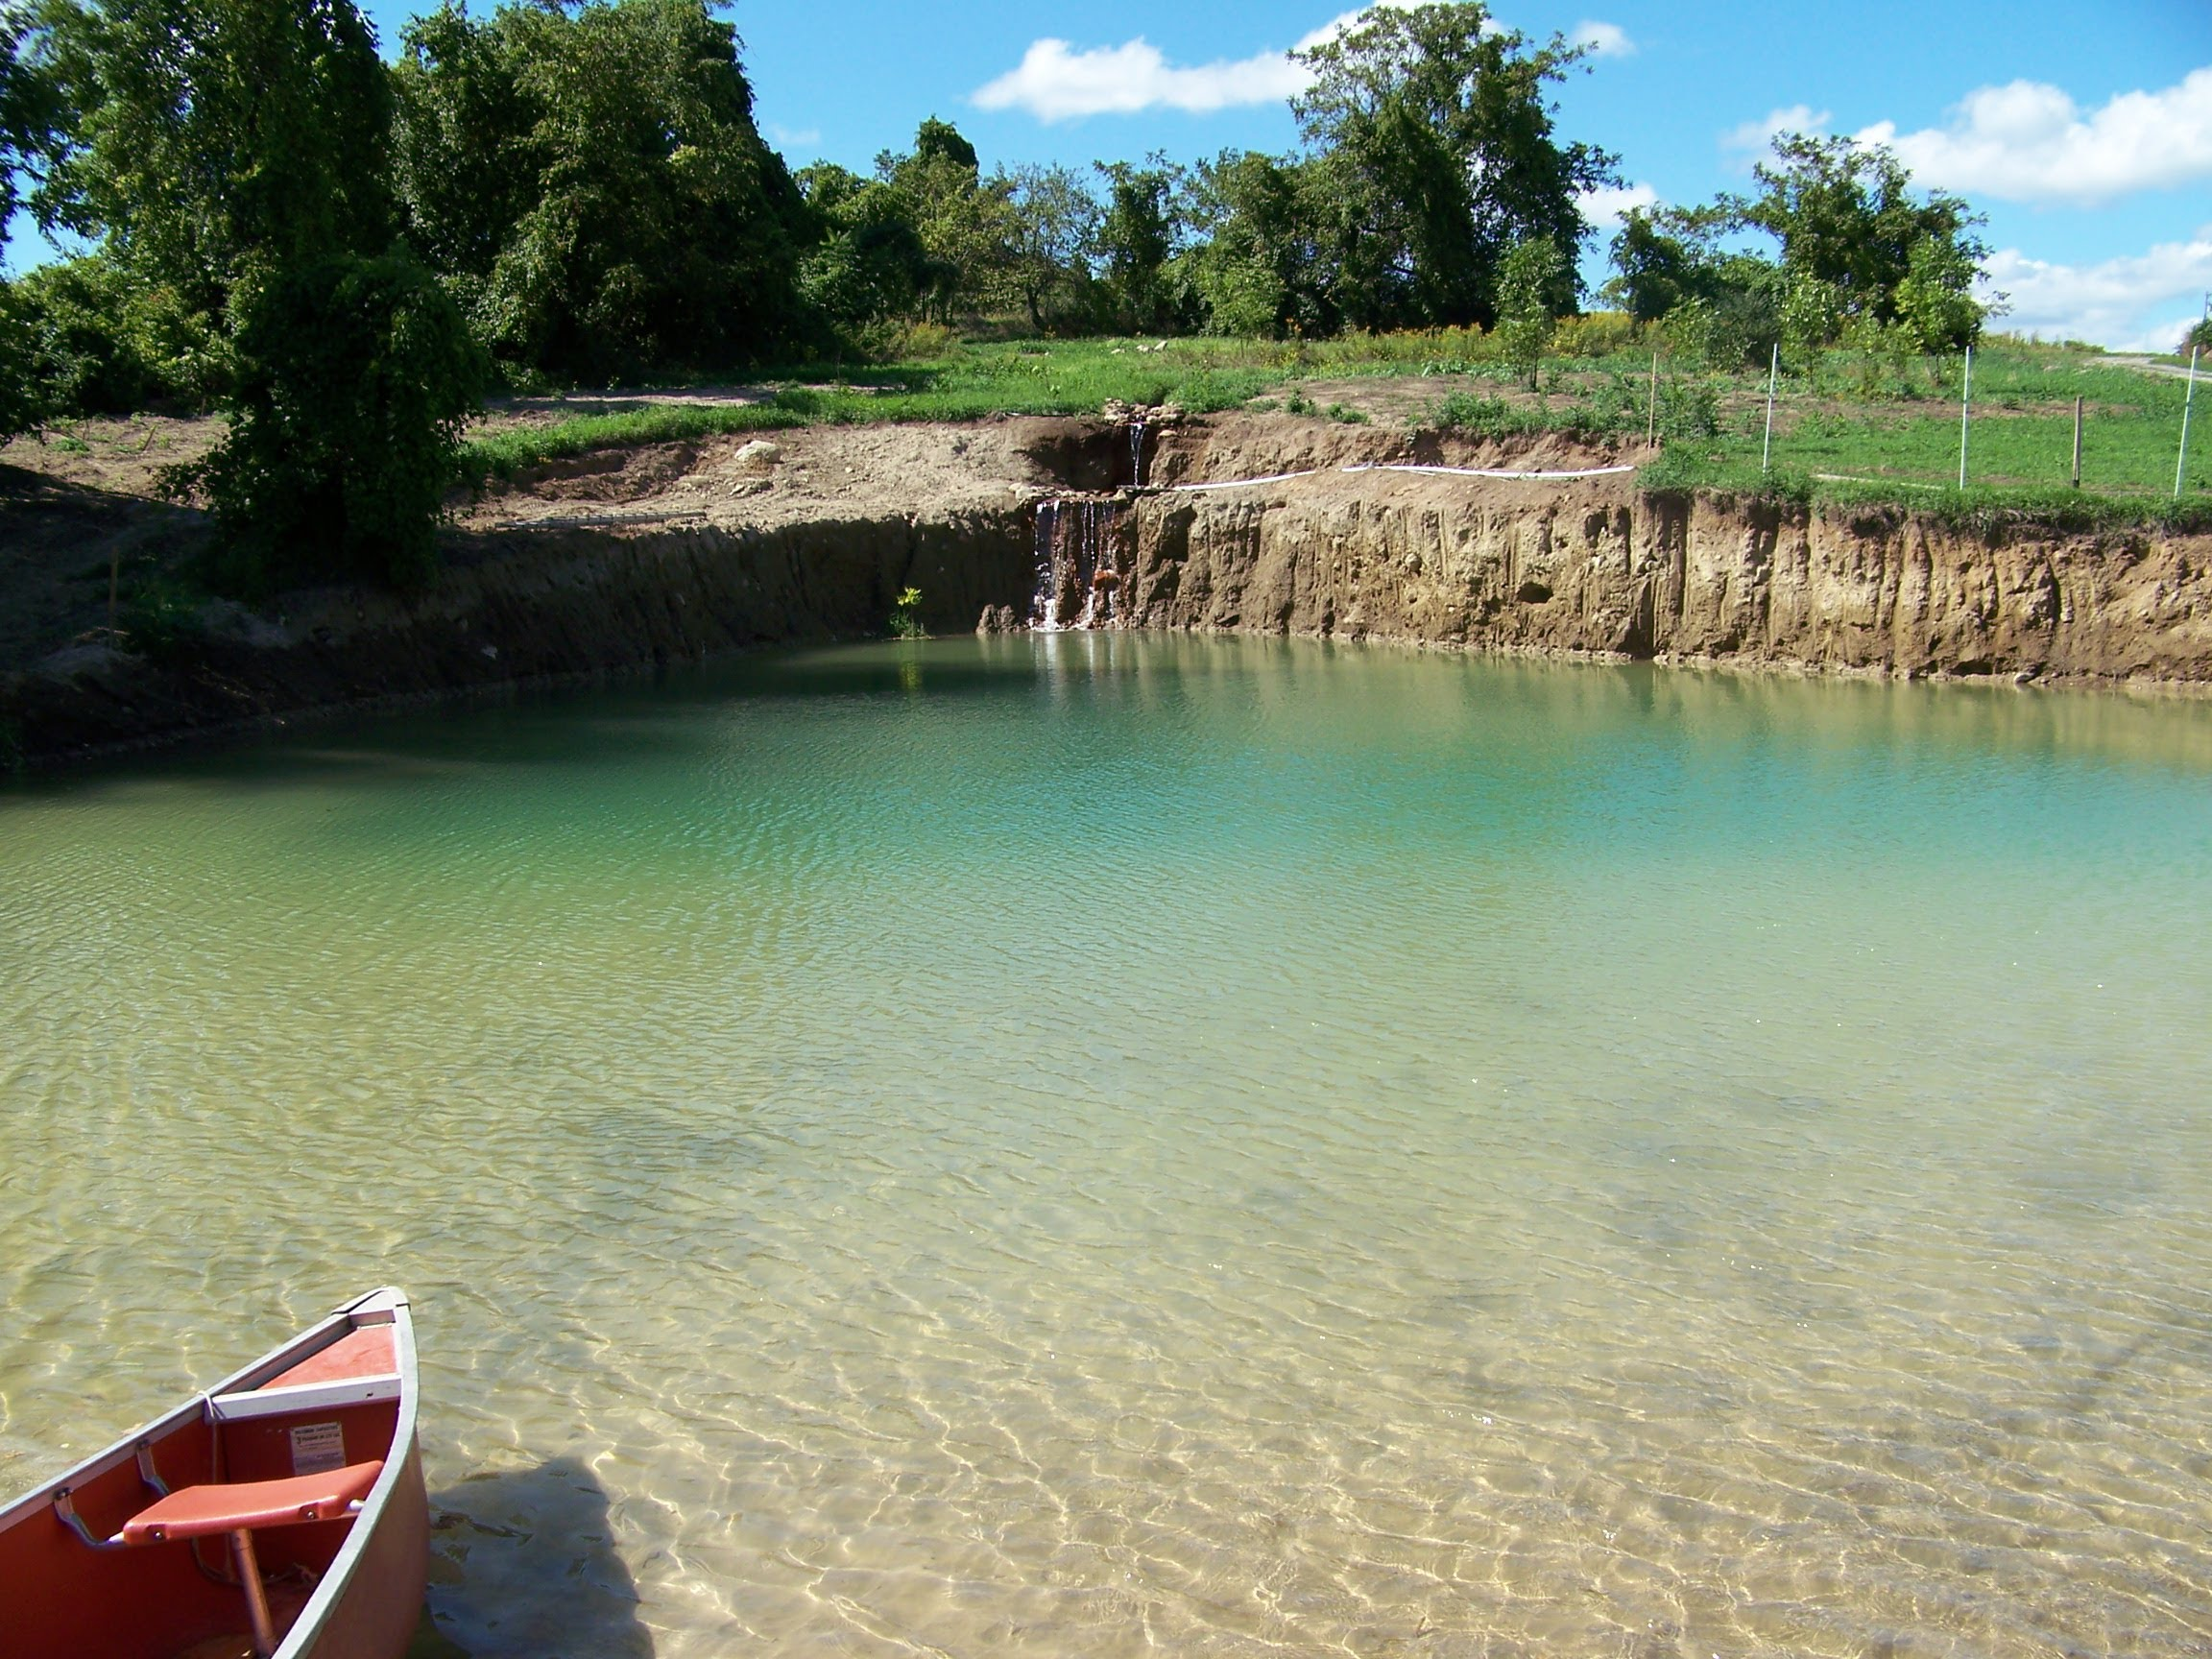 Diy Natural Swimming Pool Ideas Pictures Rickyhil Outdoor